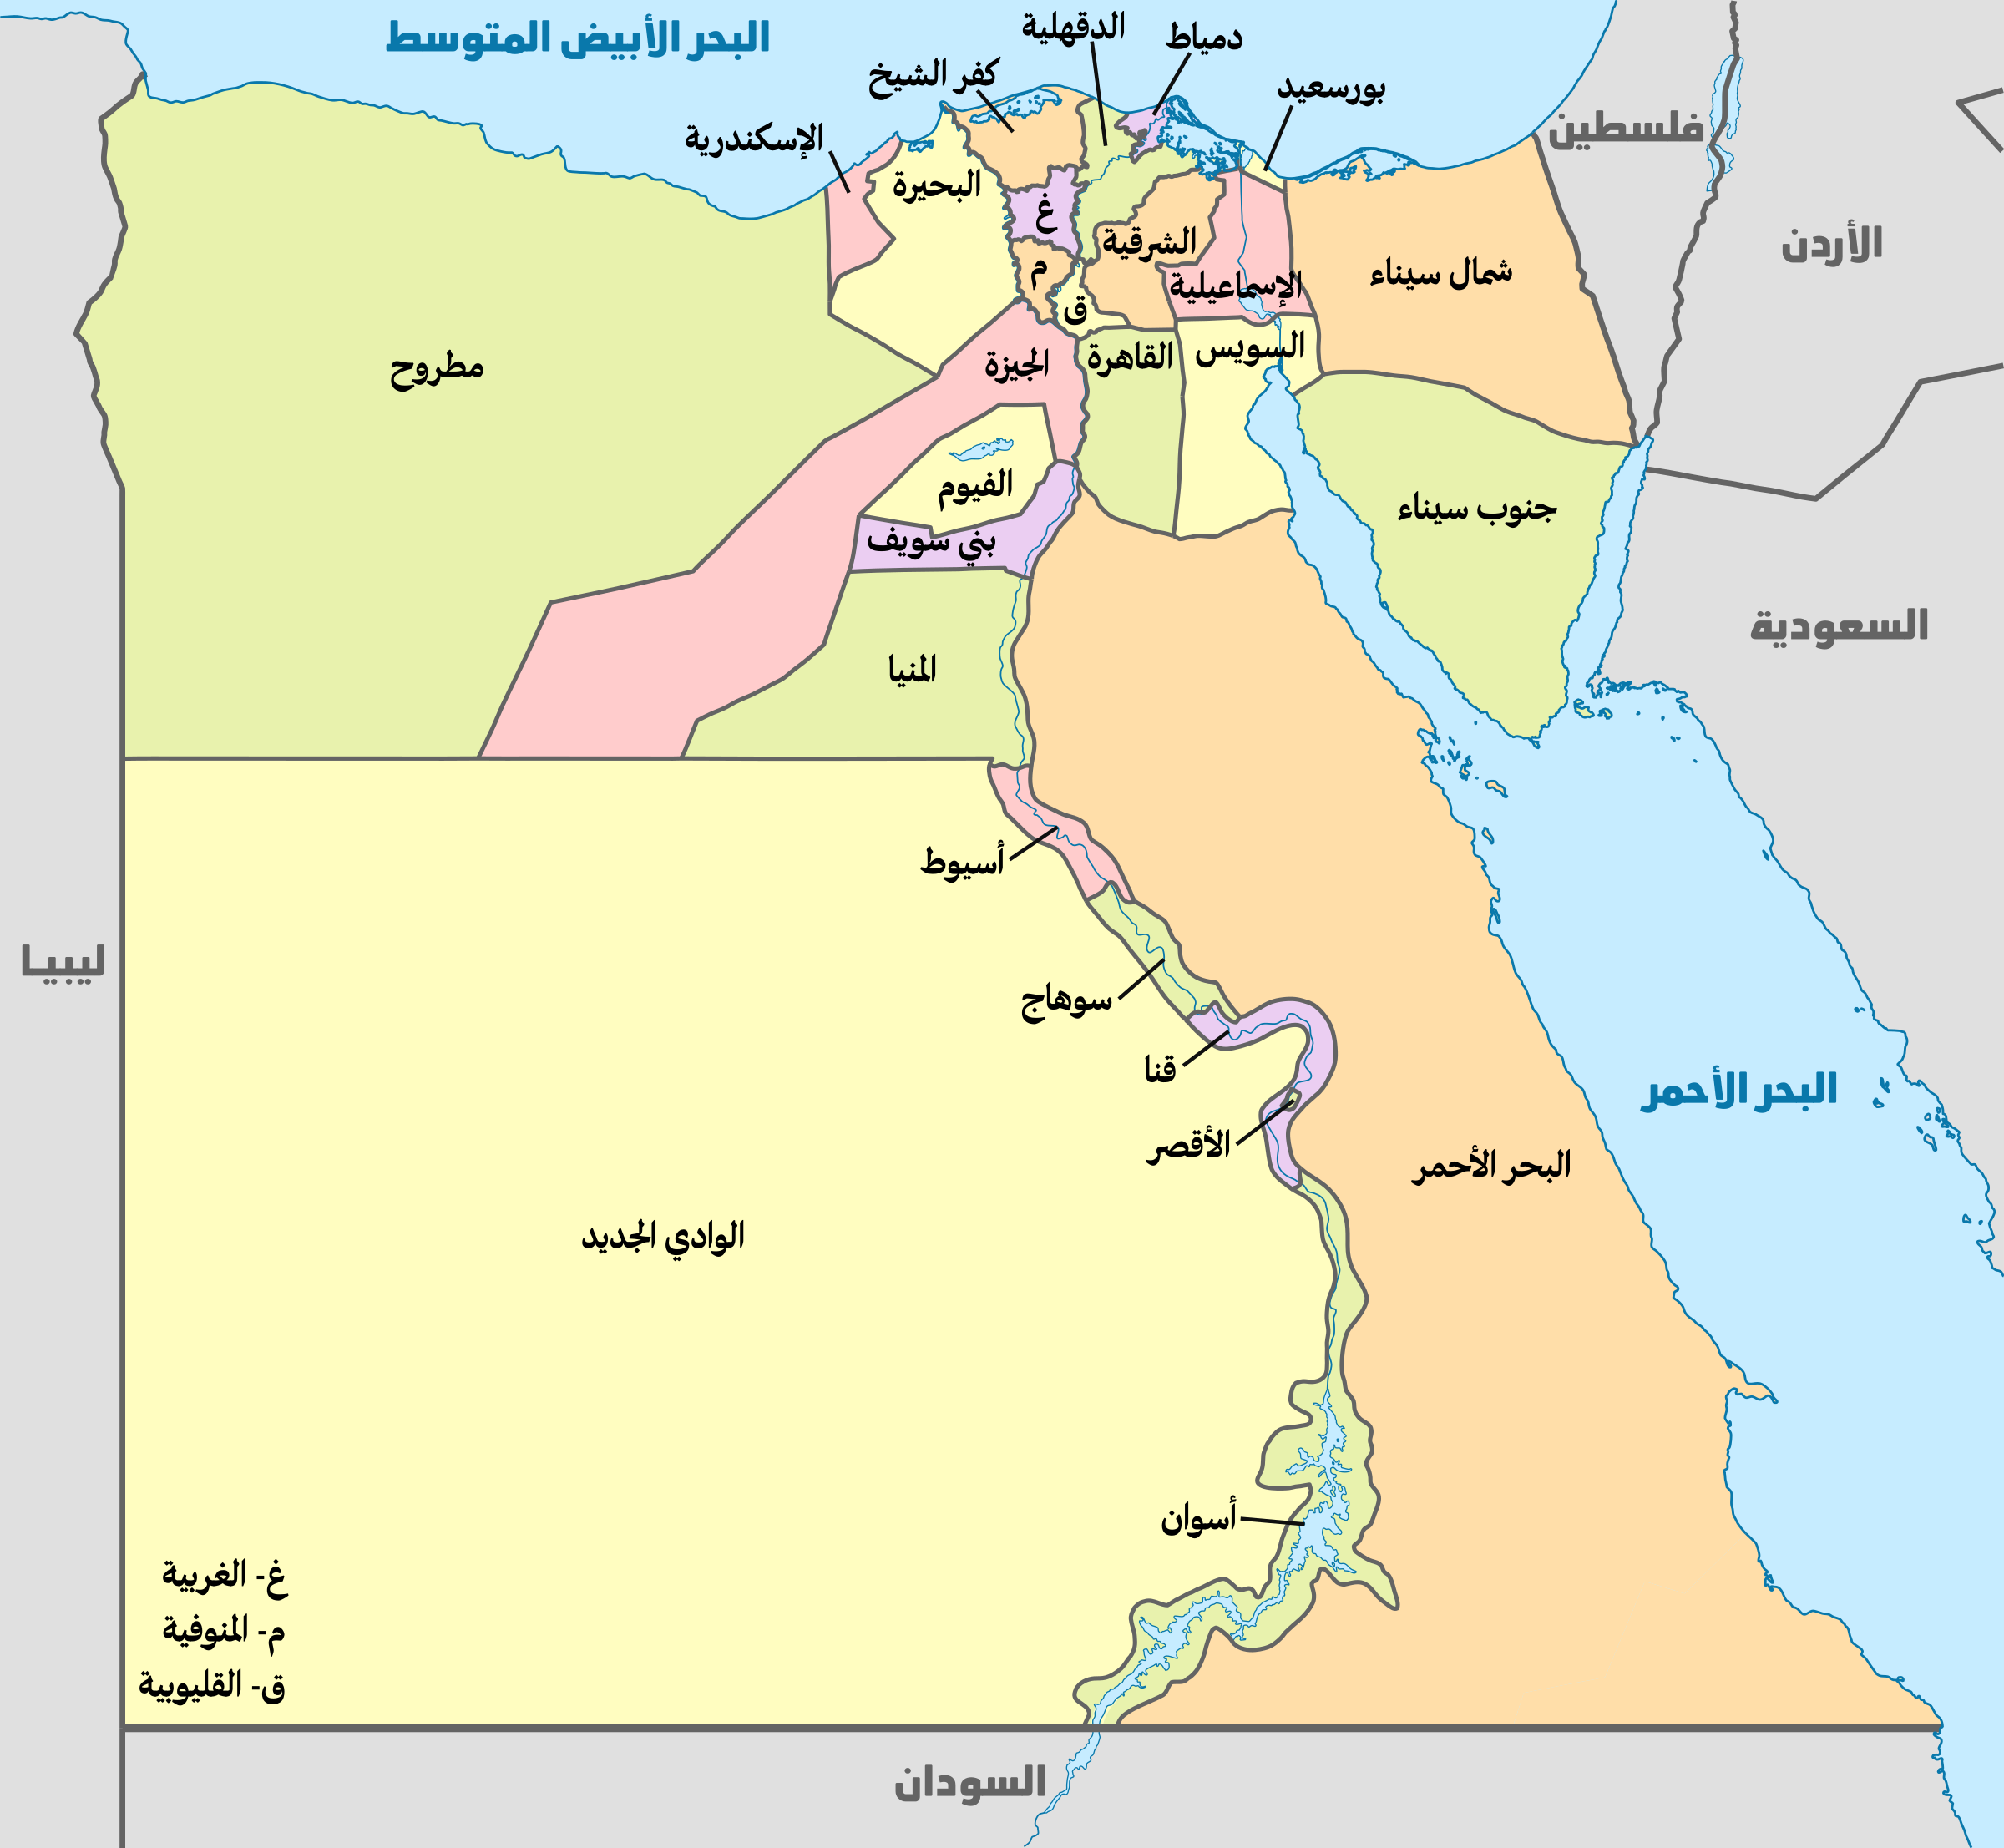 Egypt, administrative divisions map by Balaha